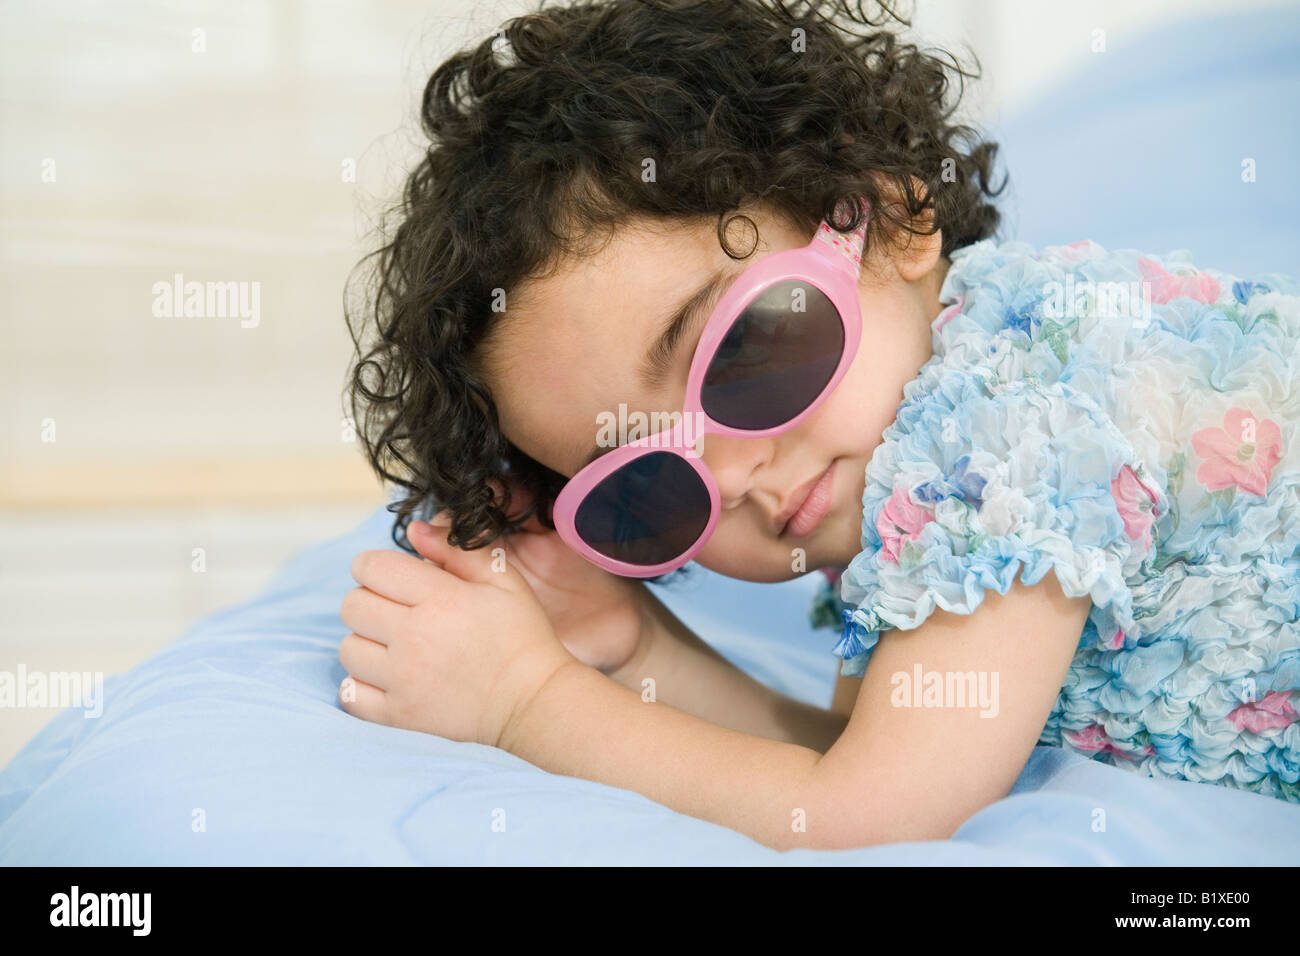 Portrait of a girl lying on the bed - Stock Image